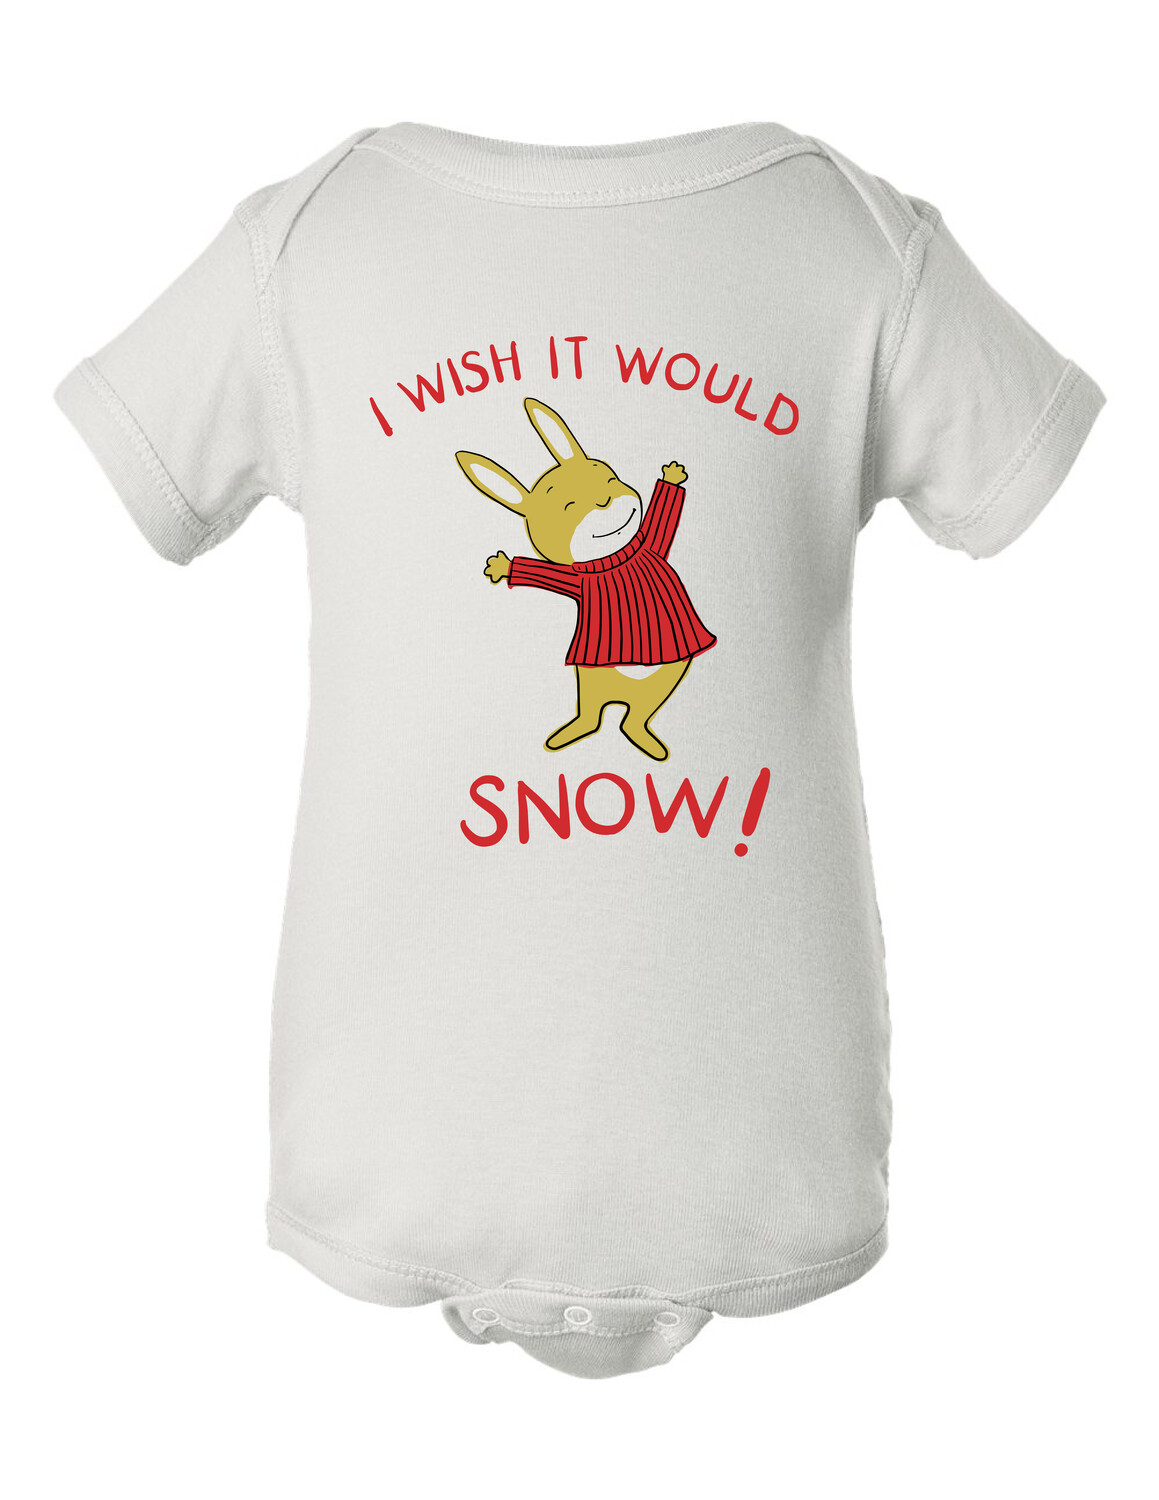 I Wish it Would Snow Onesie 12 months